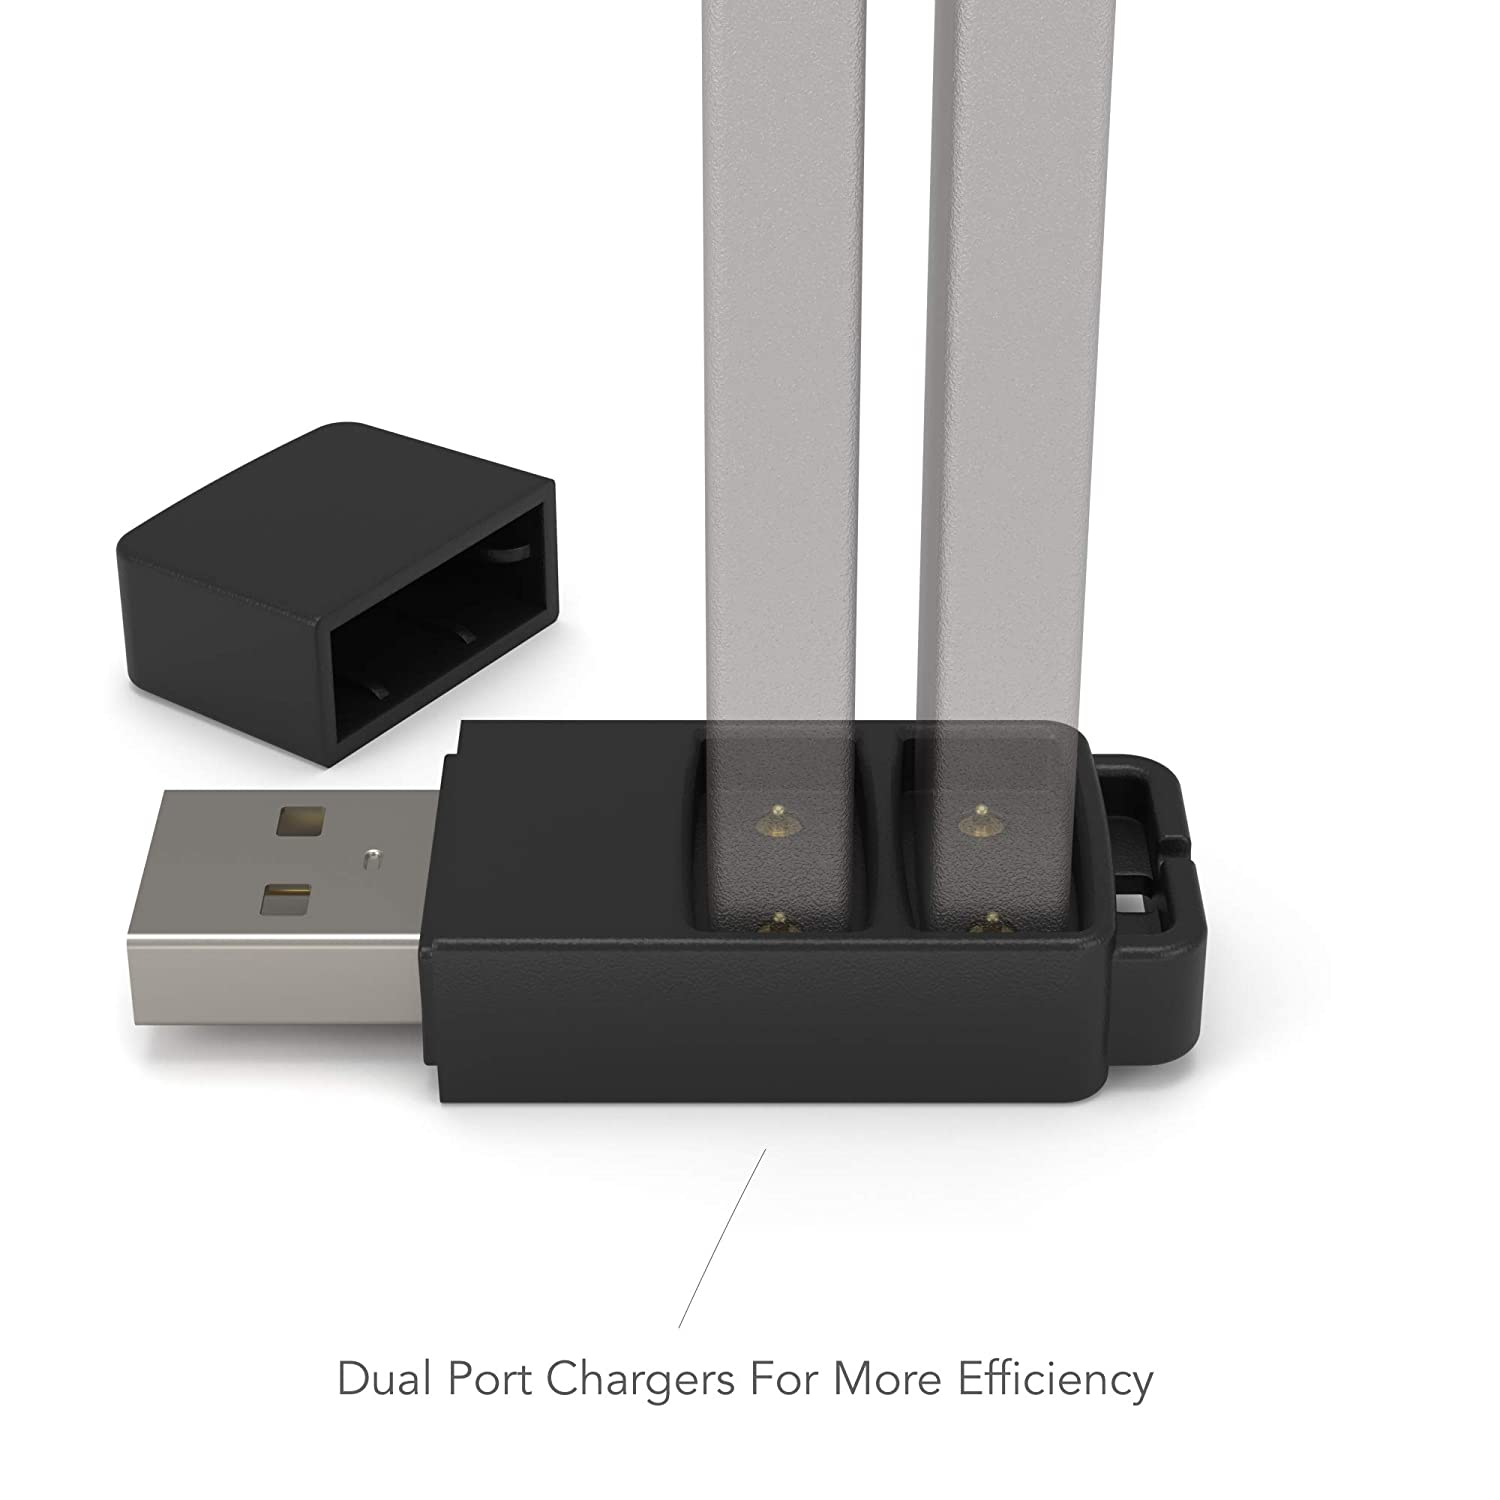 Jmateee Dual USB JUULE Charger Rapid Charging Technology Black Double Charging Ports - Plugs Into Any Laptop//Computer//Socket - RCT